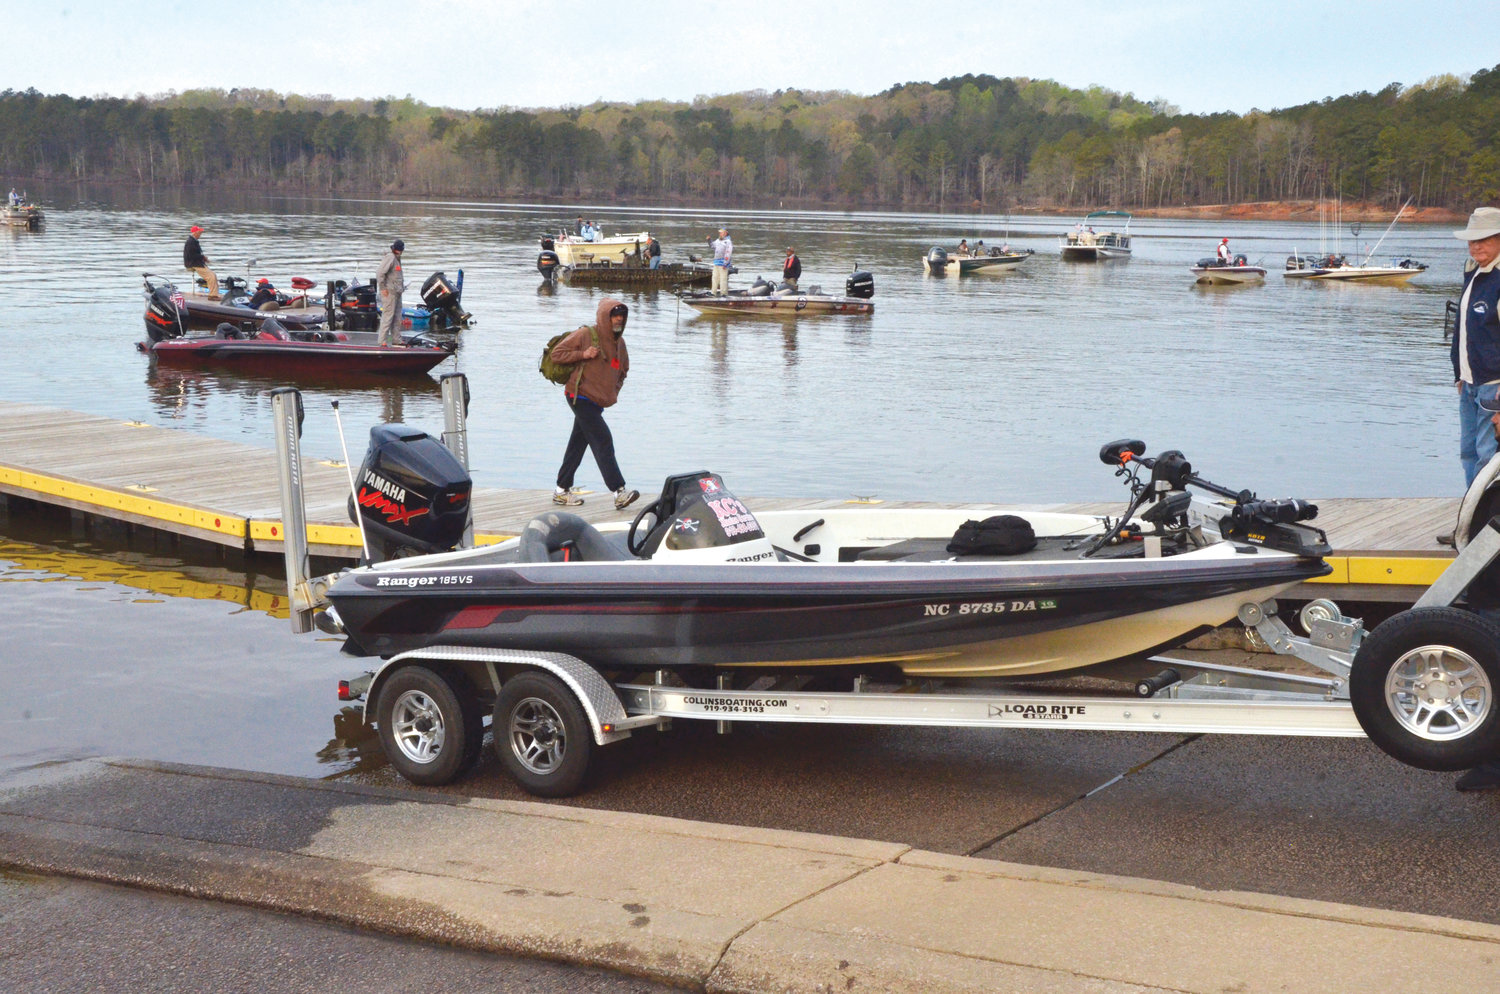 The boat ramps at Jordan Lake were busy last Thursday morning as fisherman take part in the Jordan Lake Top Shelf Fishin' Festival, sponsored by Operation North State.